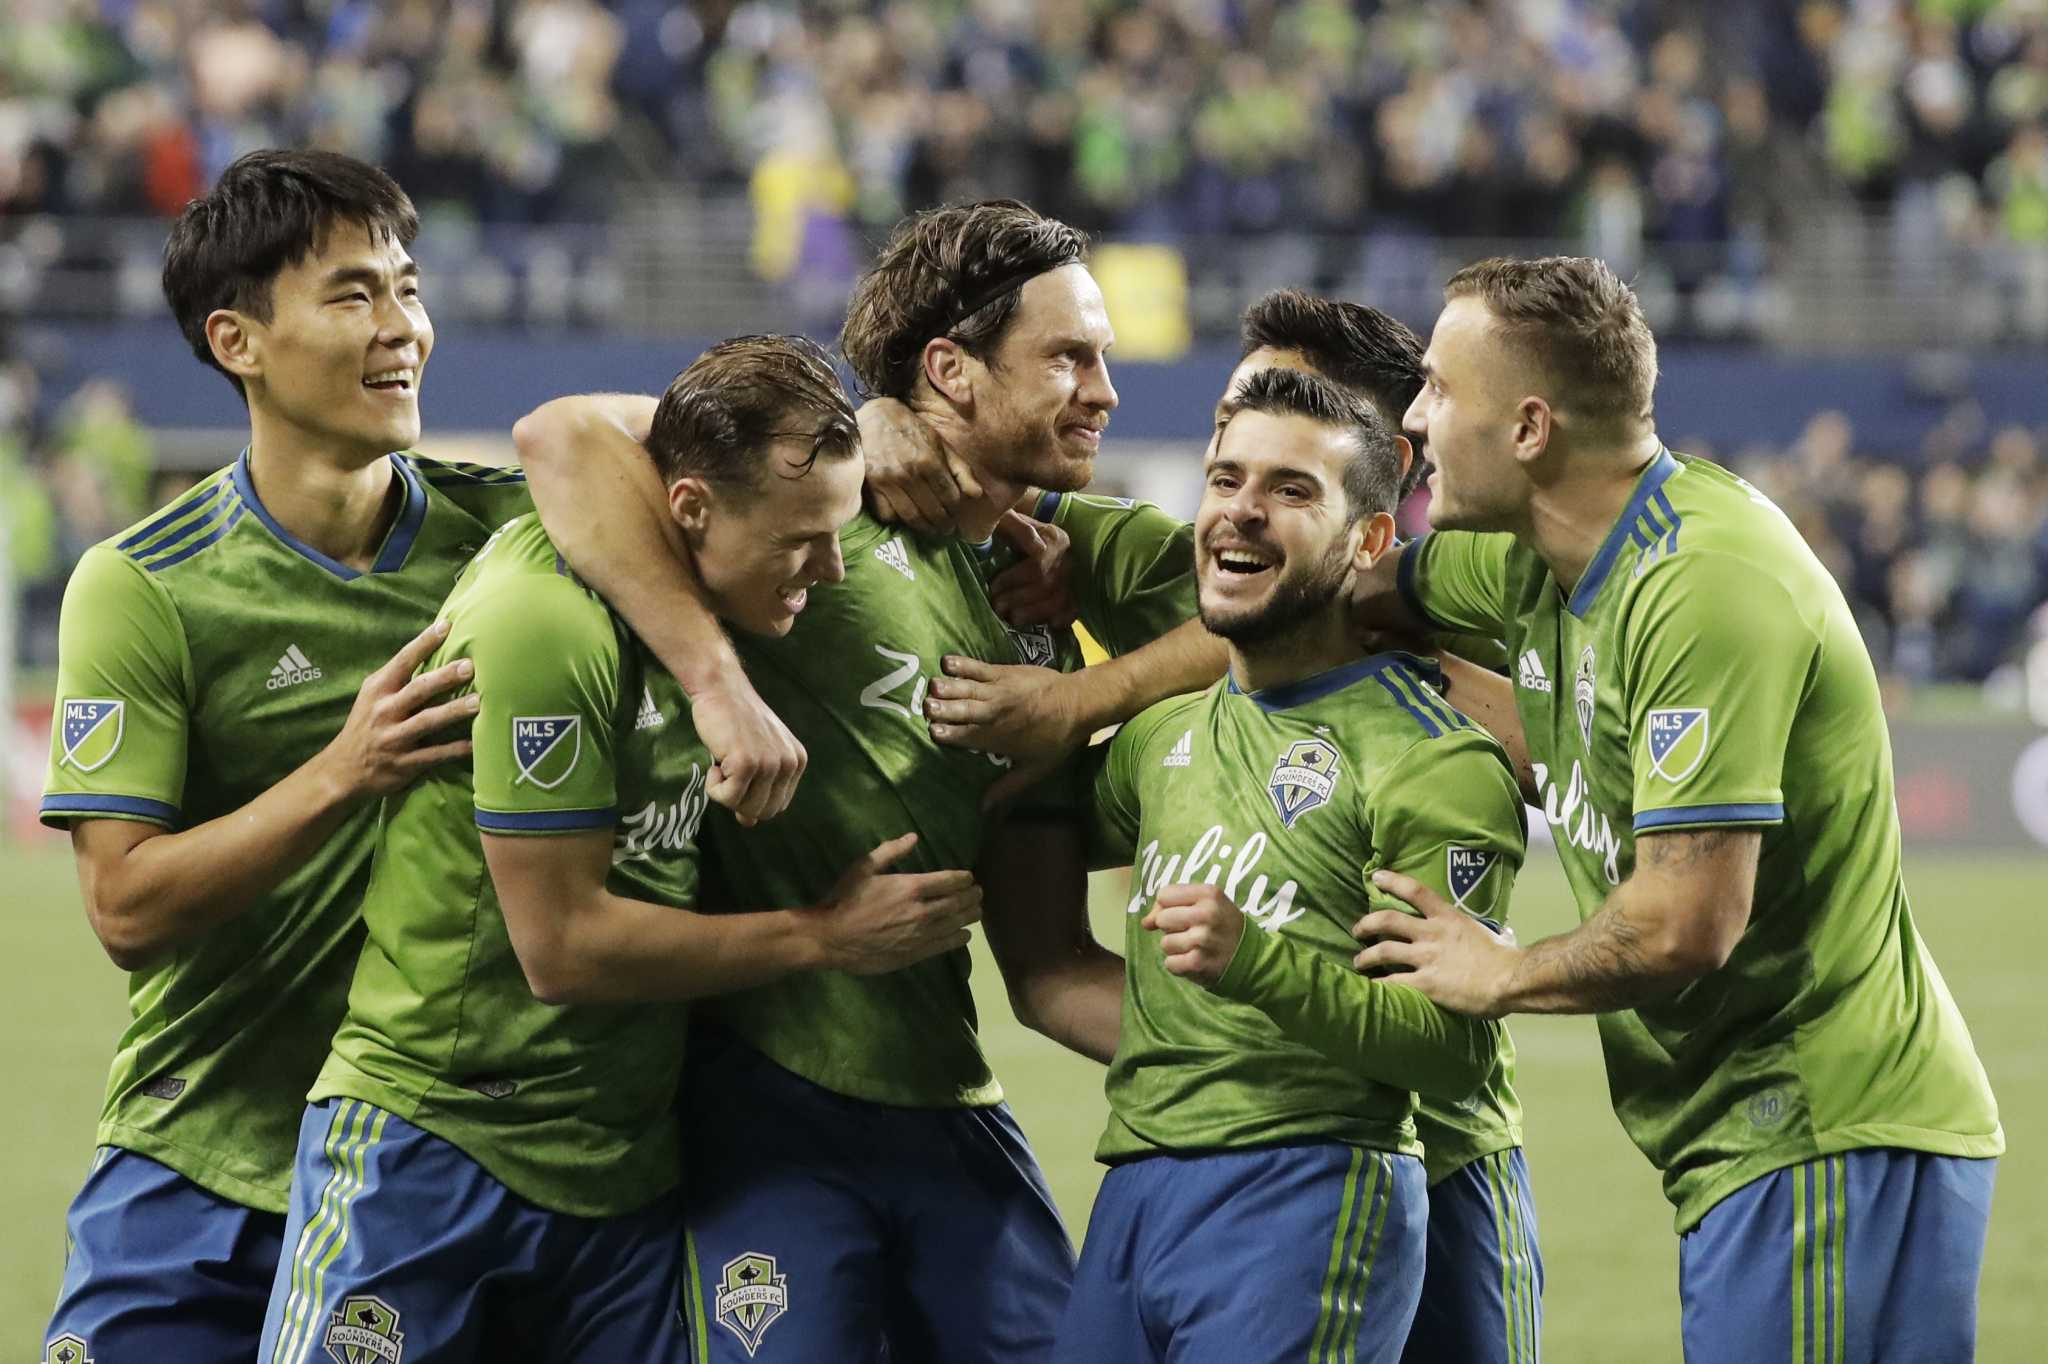 Goals and Guinness: Where to watch the Sounders game this Sunday